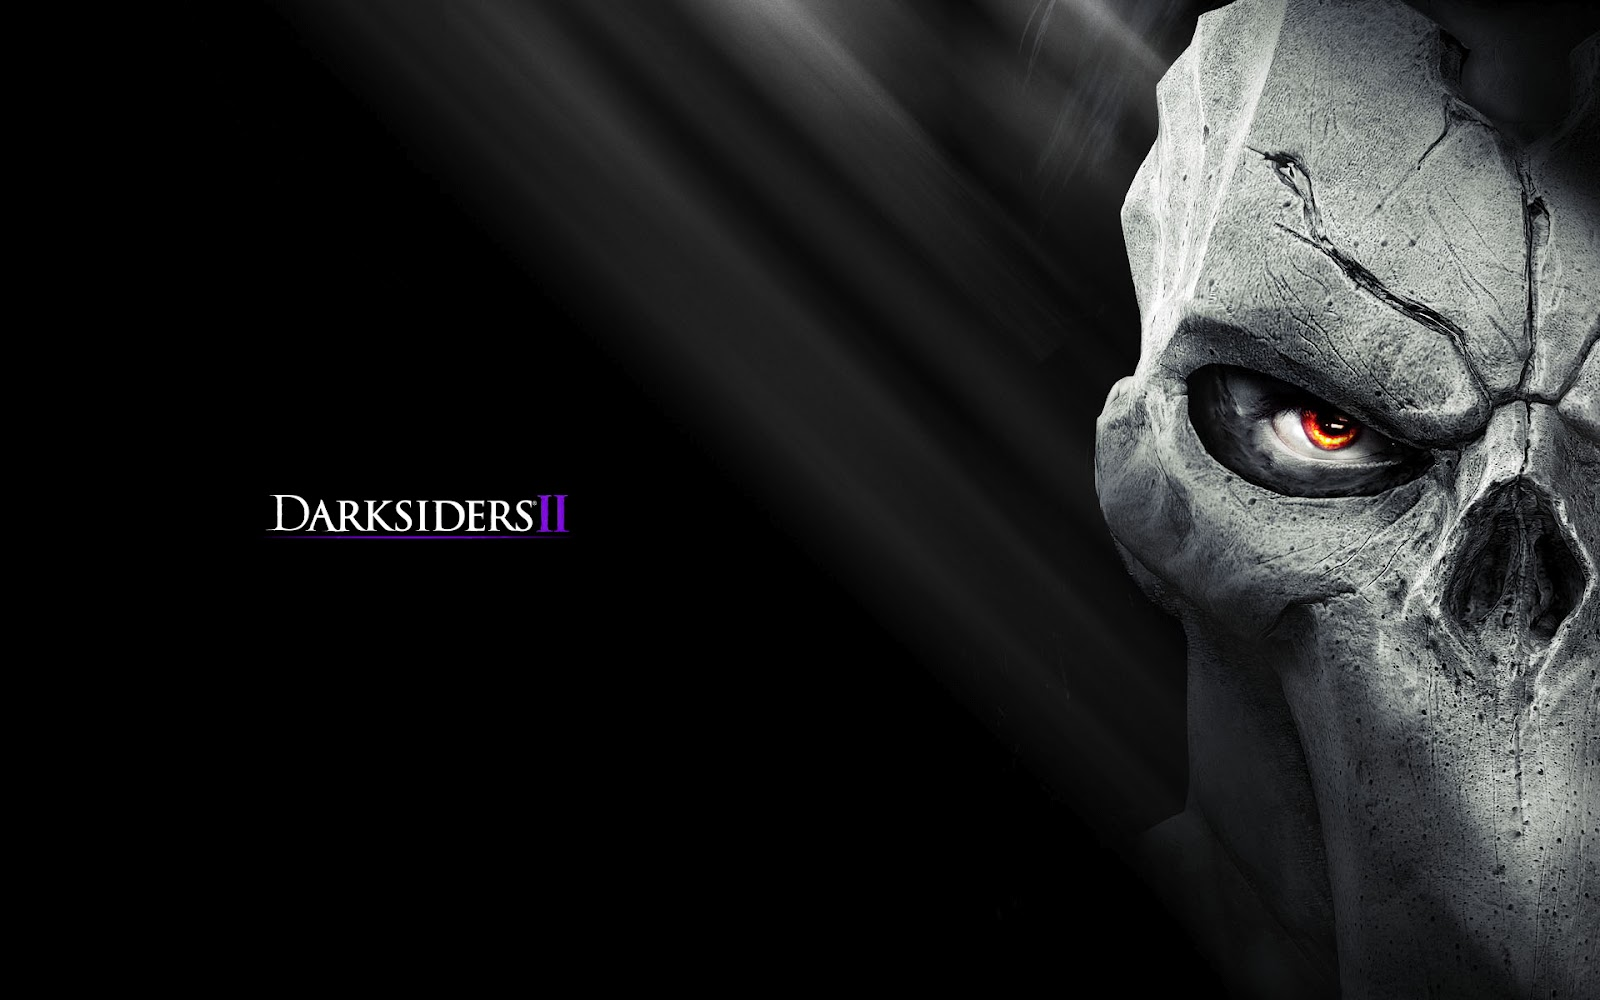 Darksiders 2 ii HD Wallpaper 1080p PiCsHoliC 1600x1000